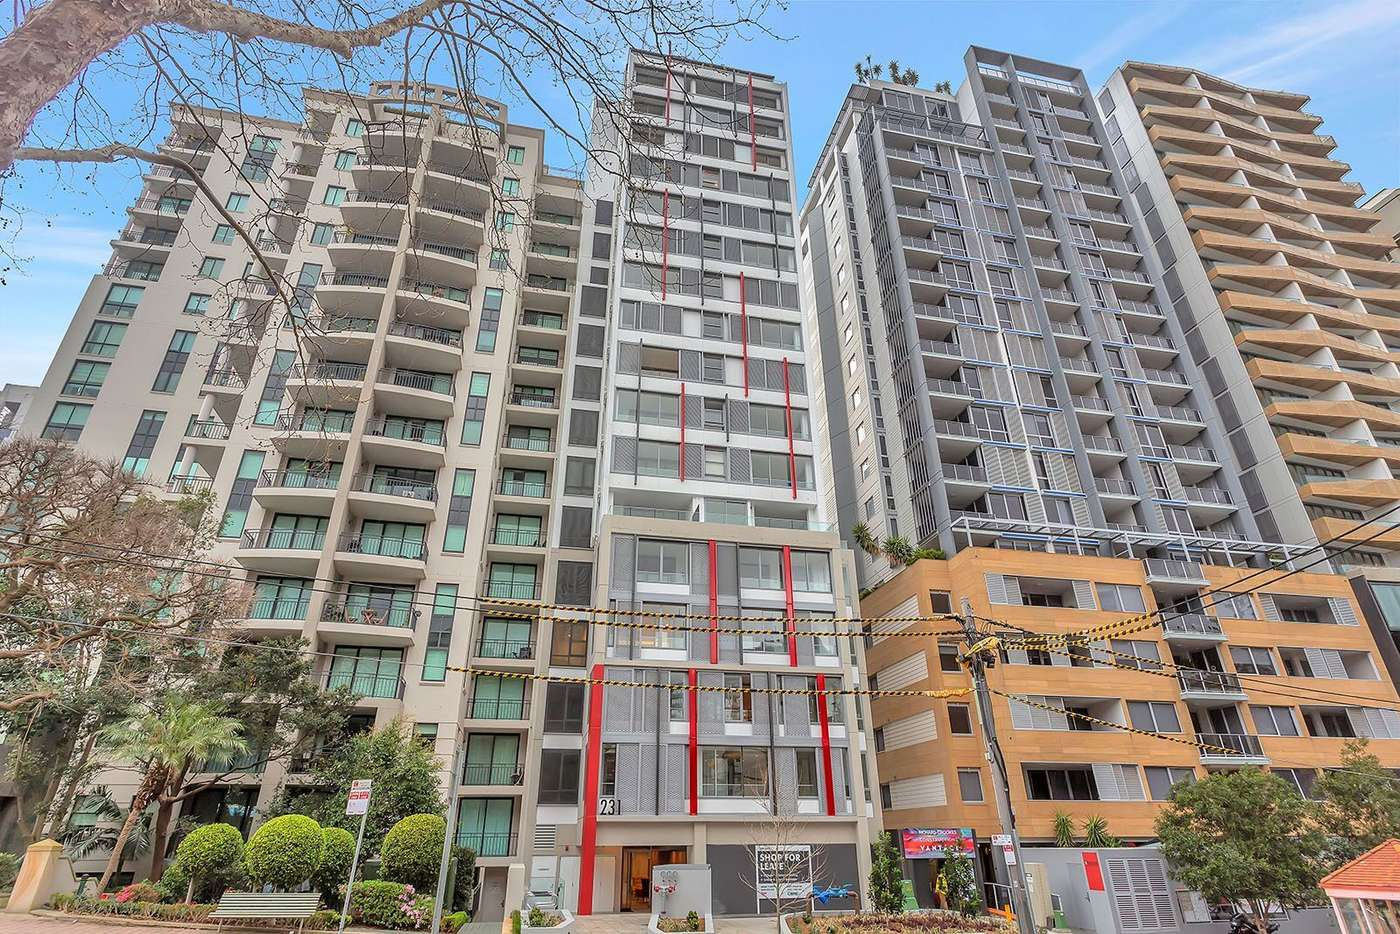 Main view of Homely apartment listing, 703/231 Miller Street, North Sydney NSW 2060